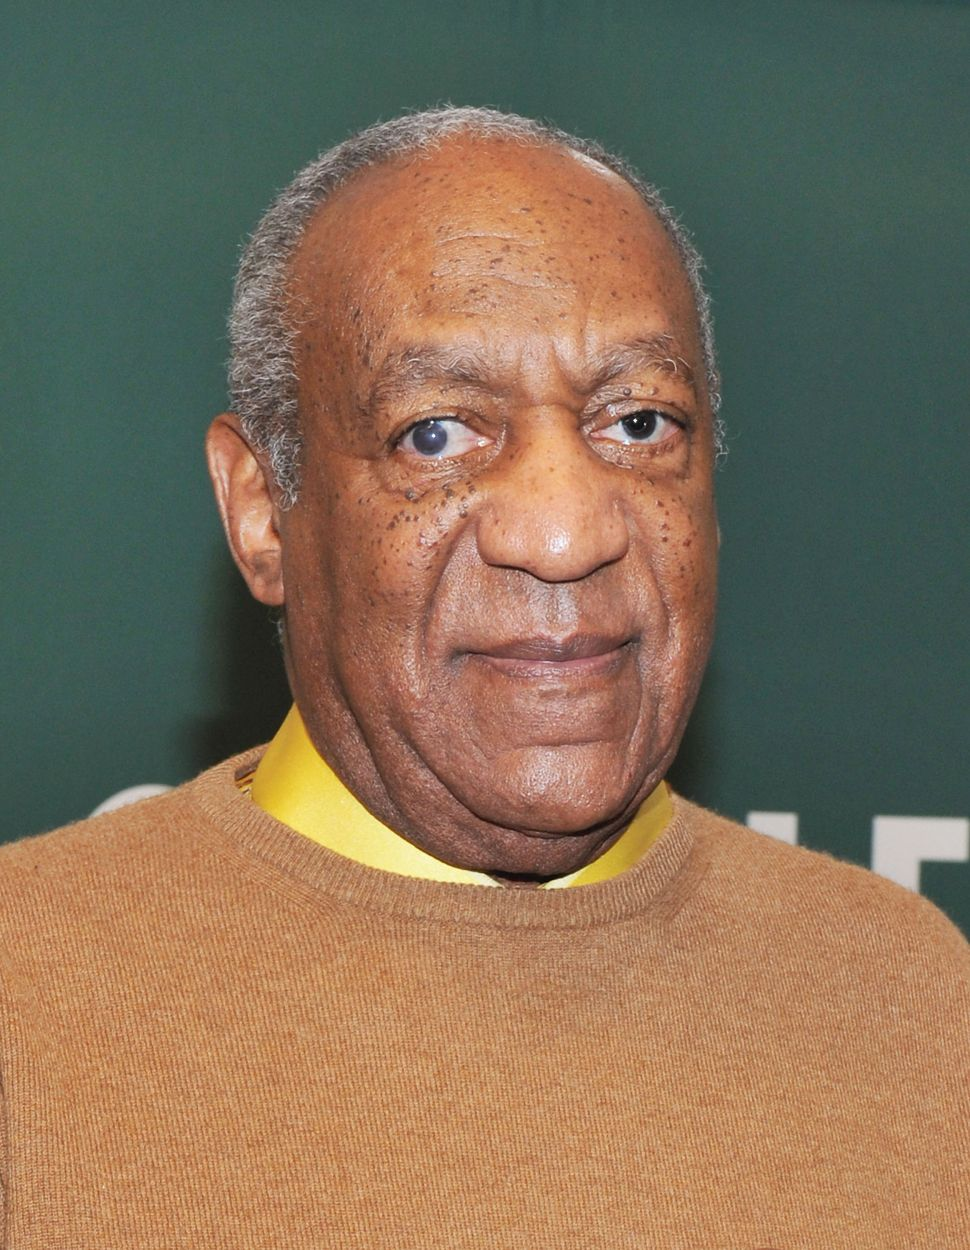 Disney World Removes Cosby Statue; Smithsonian Keeps Actor's Art Collection On View